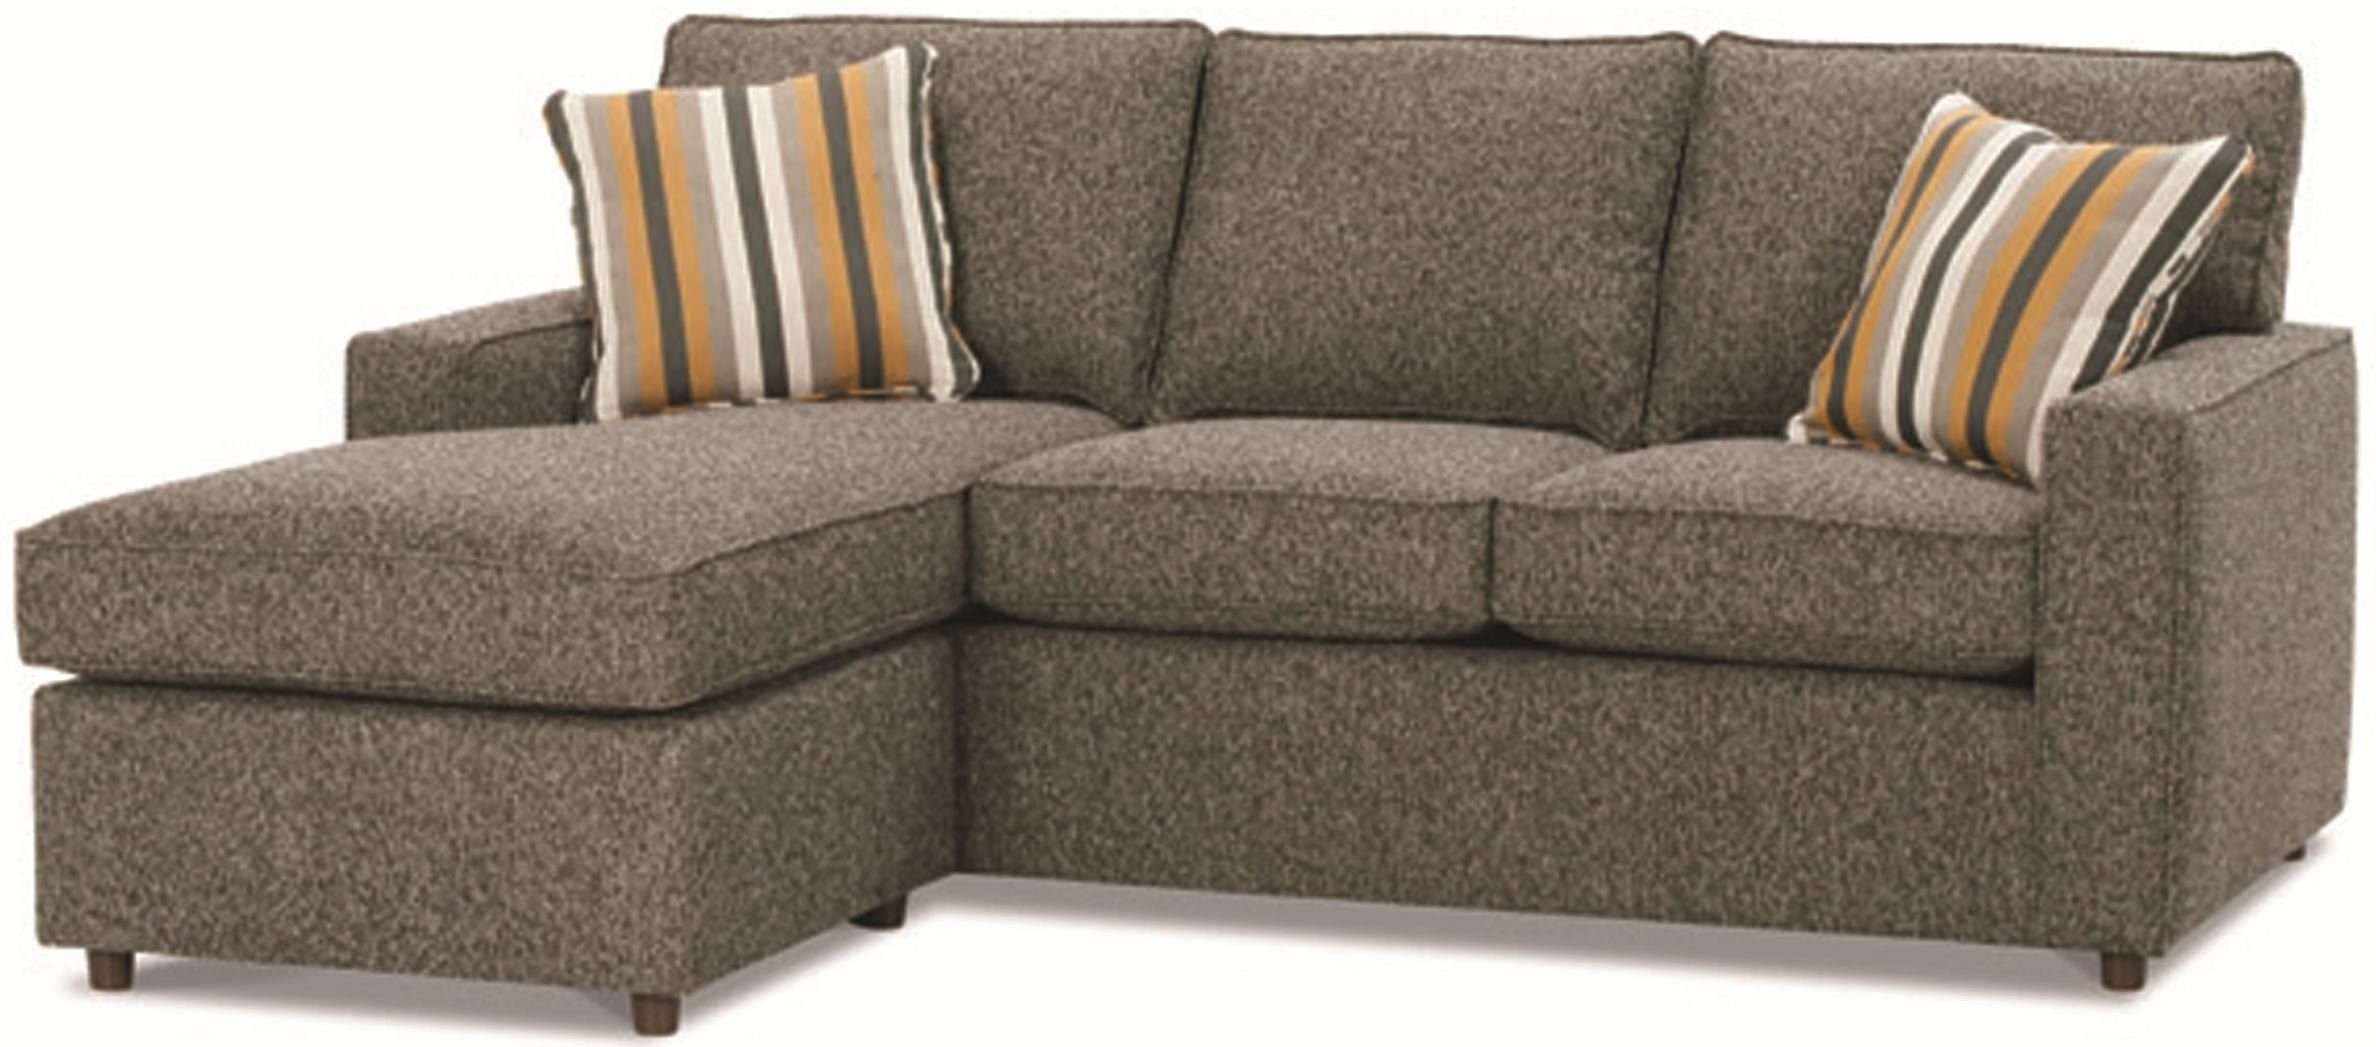 Minneapolis Sectional Sofas Within Recent Monaco Contemporary Sofa With Reversible Chaise Ottomanrowe (View 12 of 20)